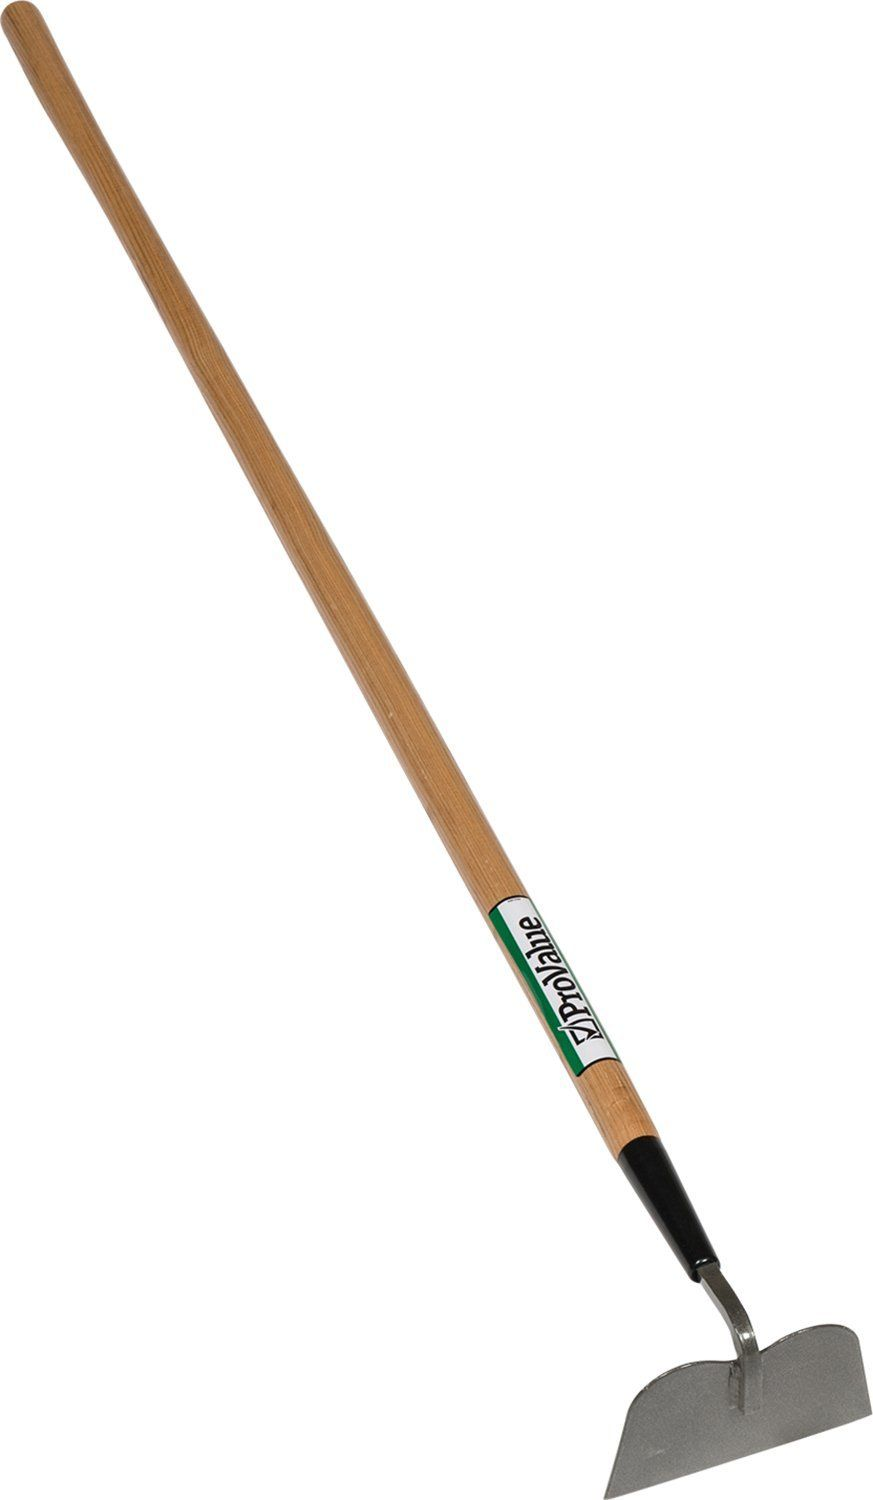 Seymour Sv Gh10 6 1 4 Inch By 4 Inch Welded Garden Hoe With